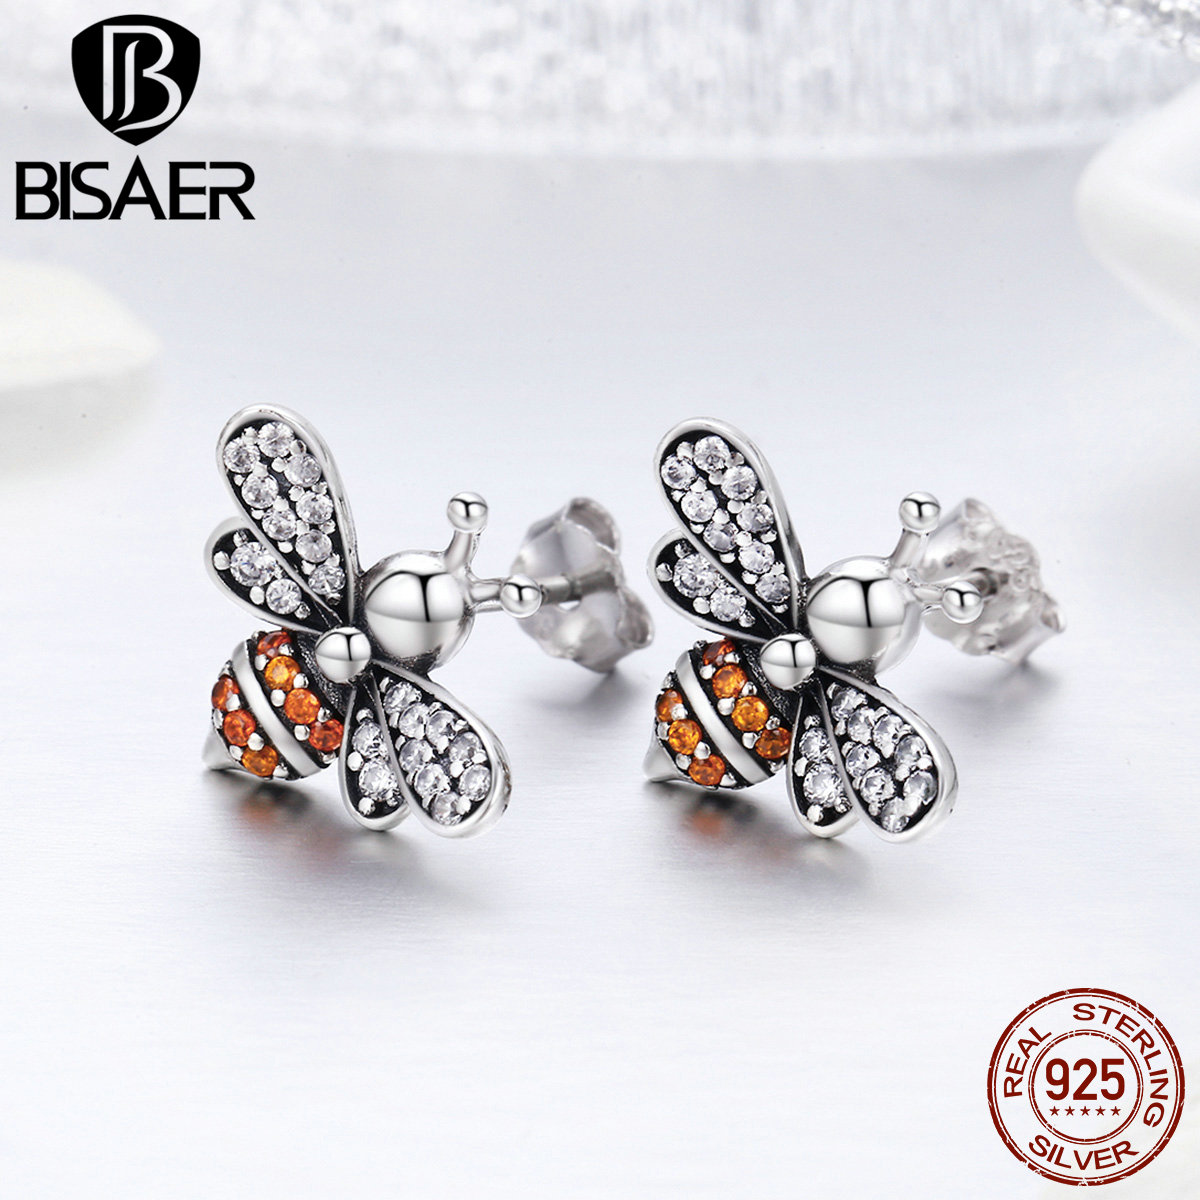 Authentic 100% 925 Sterling Silver Flying Insect Yellow Dancing Bee Stud Earrings For Women Fashion Jewelry Birthday GiftAuthentic 100% 925 Sterling Silver Flying Insect Yellow Dancing Bee Stud Earrings For Women Fashion Jewelry Birthday Gift